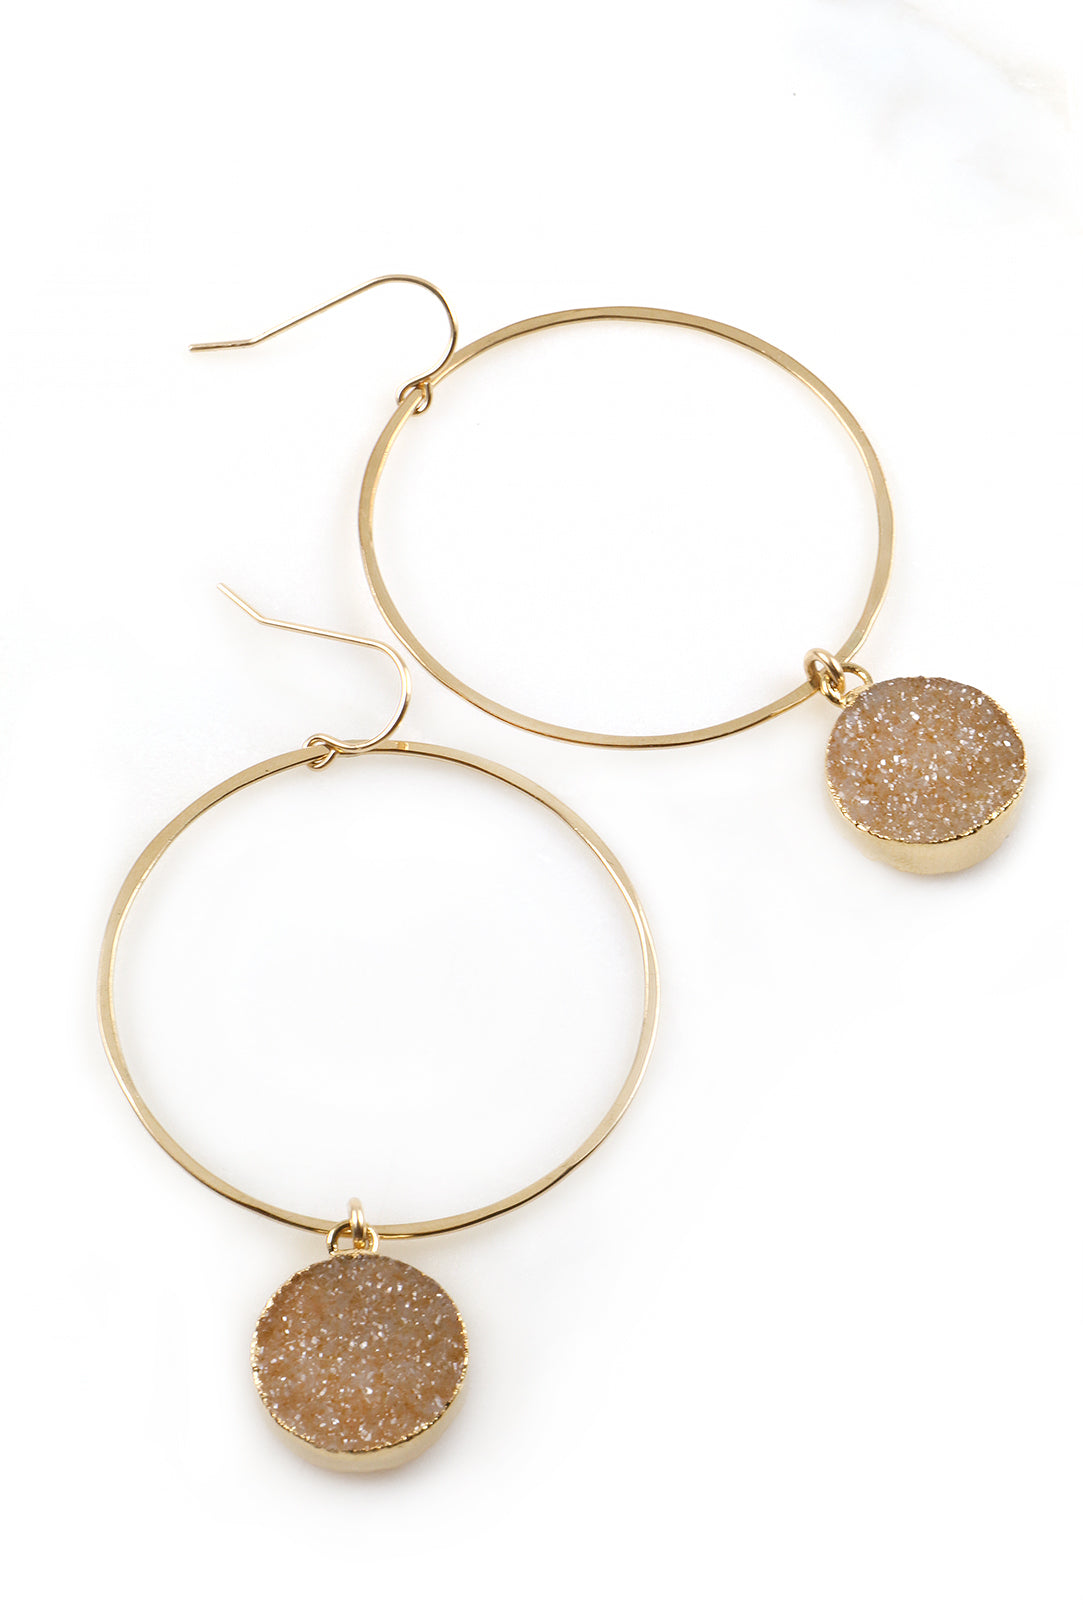 Hammered Gold Hoop Earrings with Round Druzy